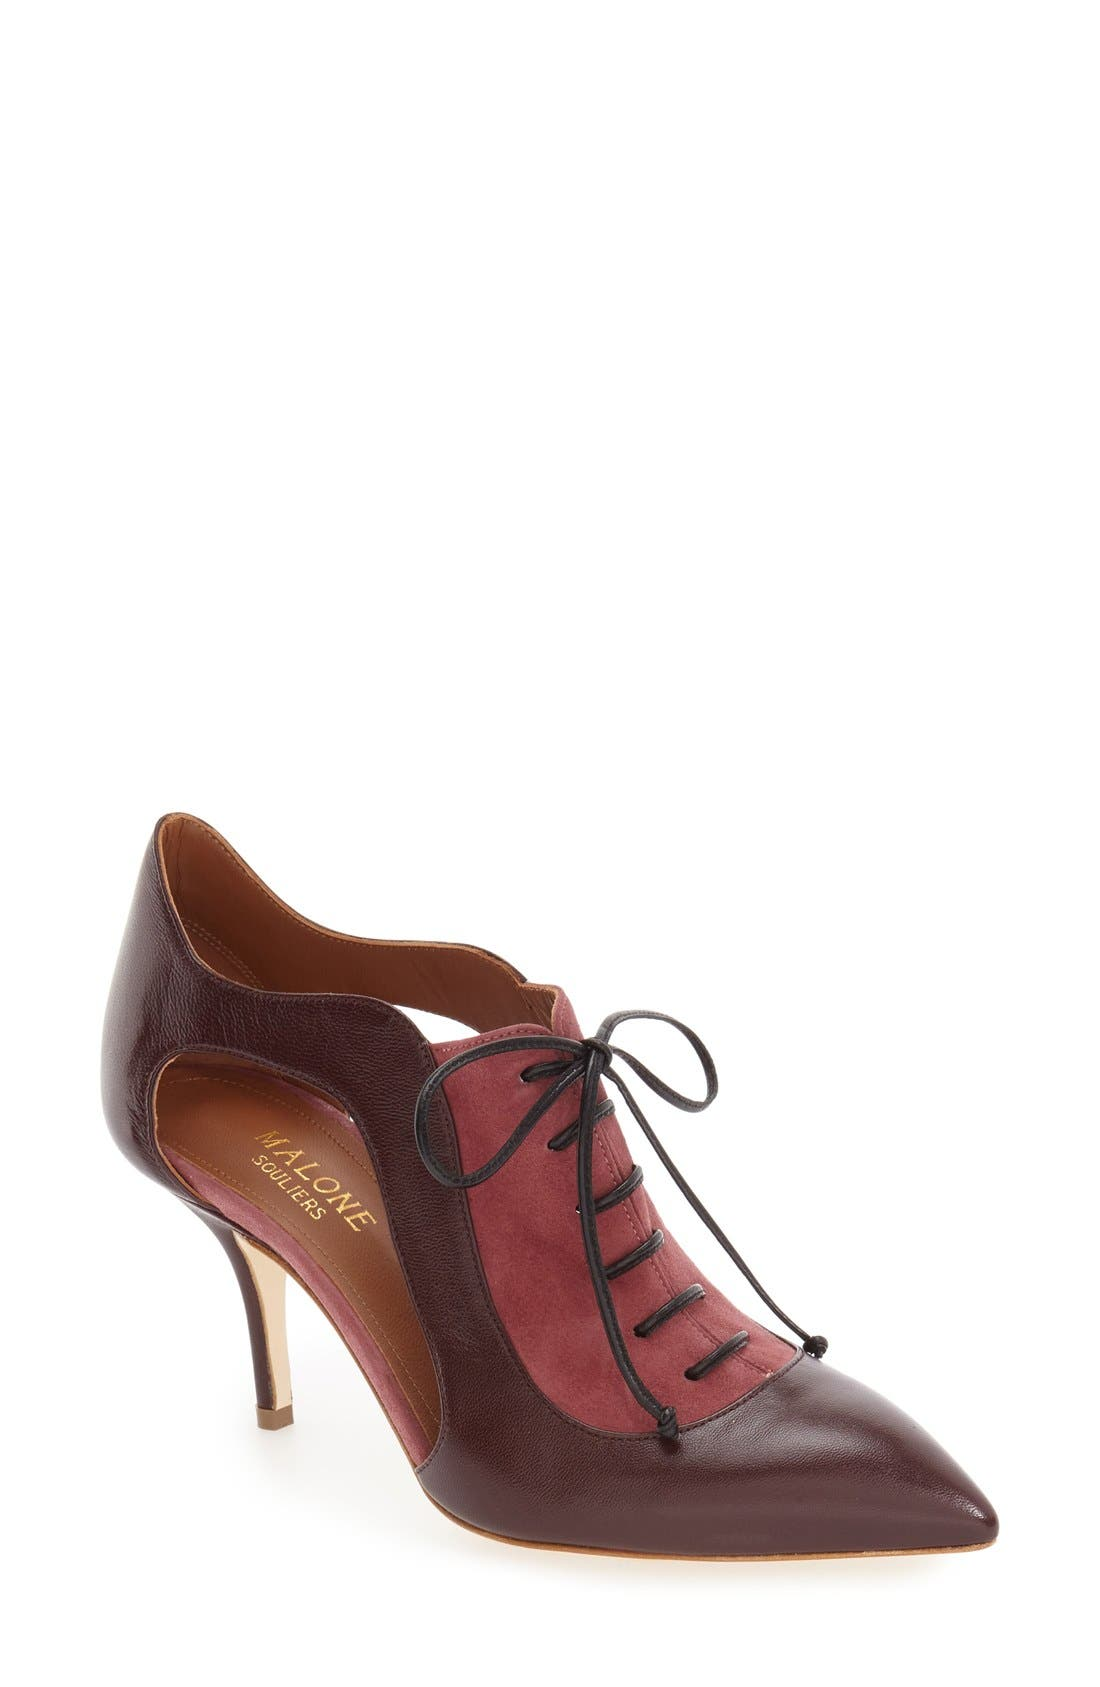 Main Image - Malone Souliers 'Lorraine' Lace-Up Pump (Women)